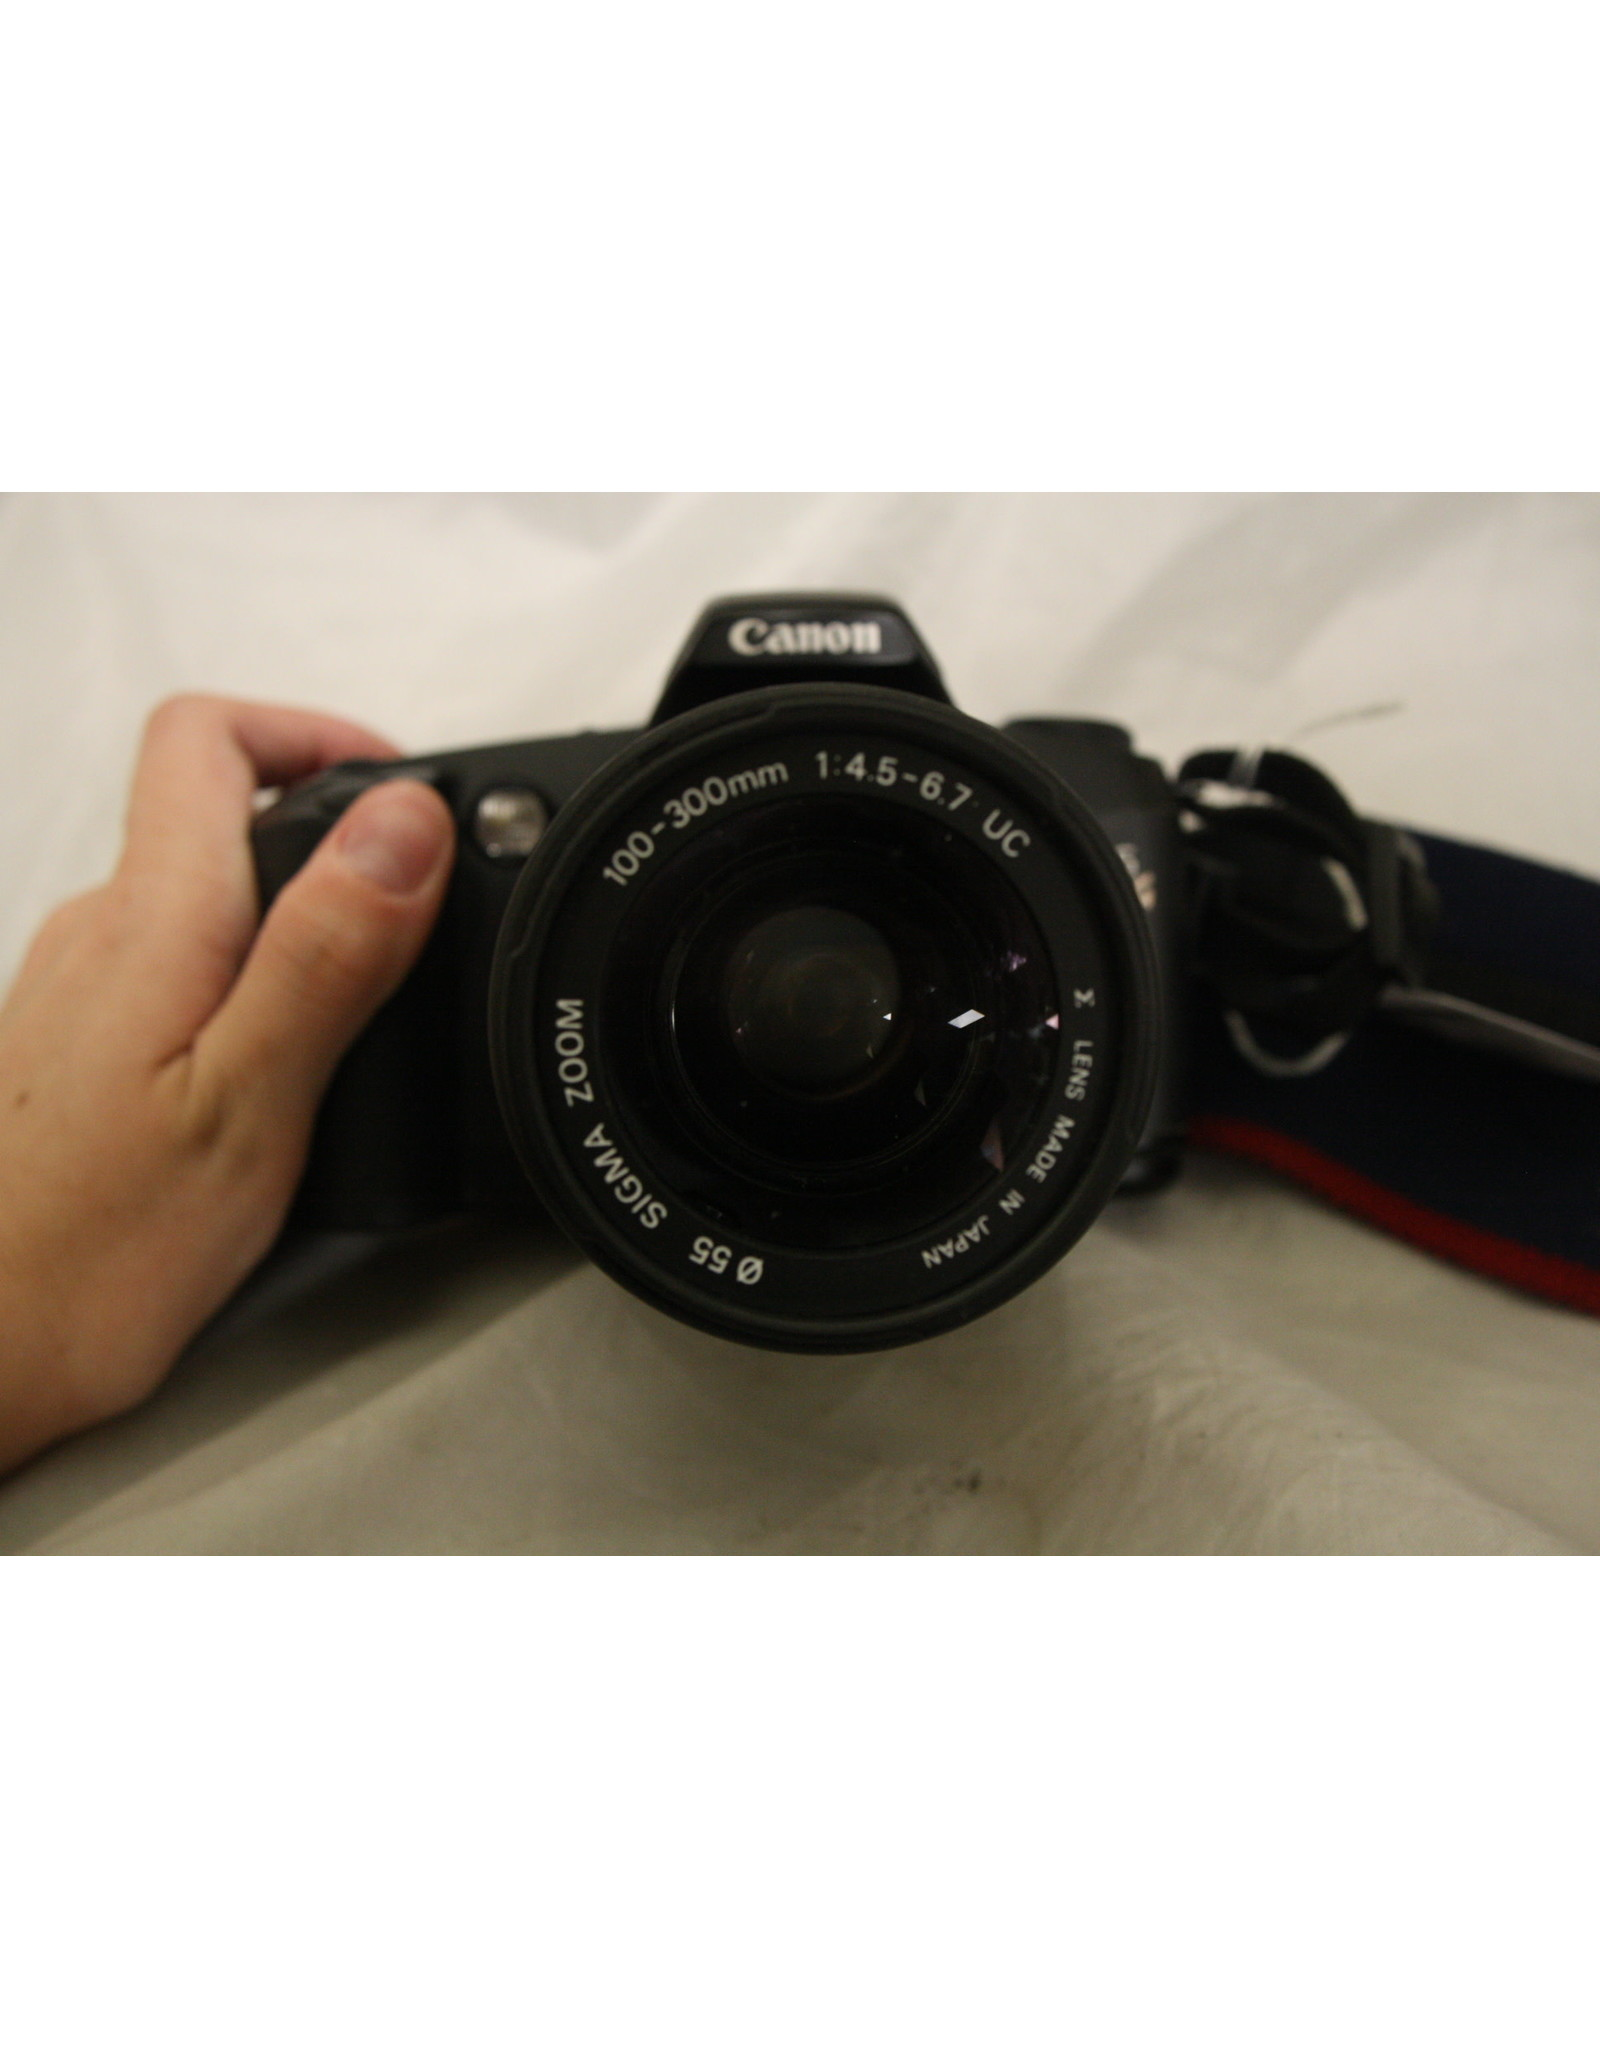 Canon Canon EOS Rebel G 35mm Film Camera with Sigma 100-300mm Lens